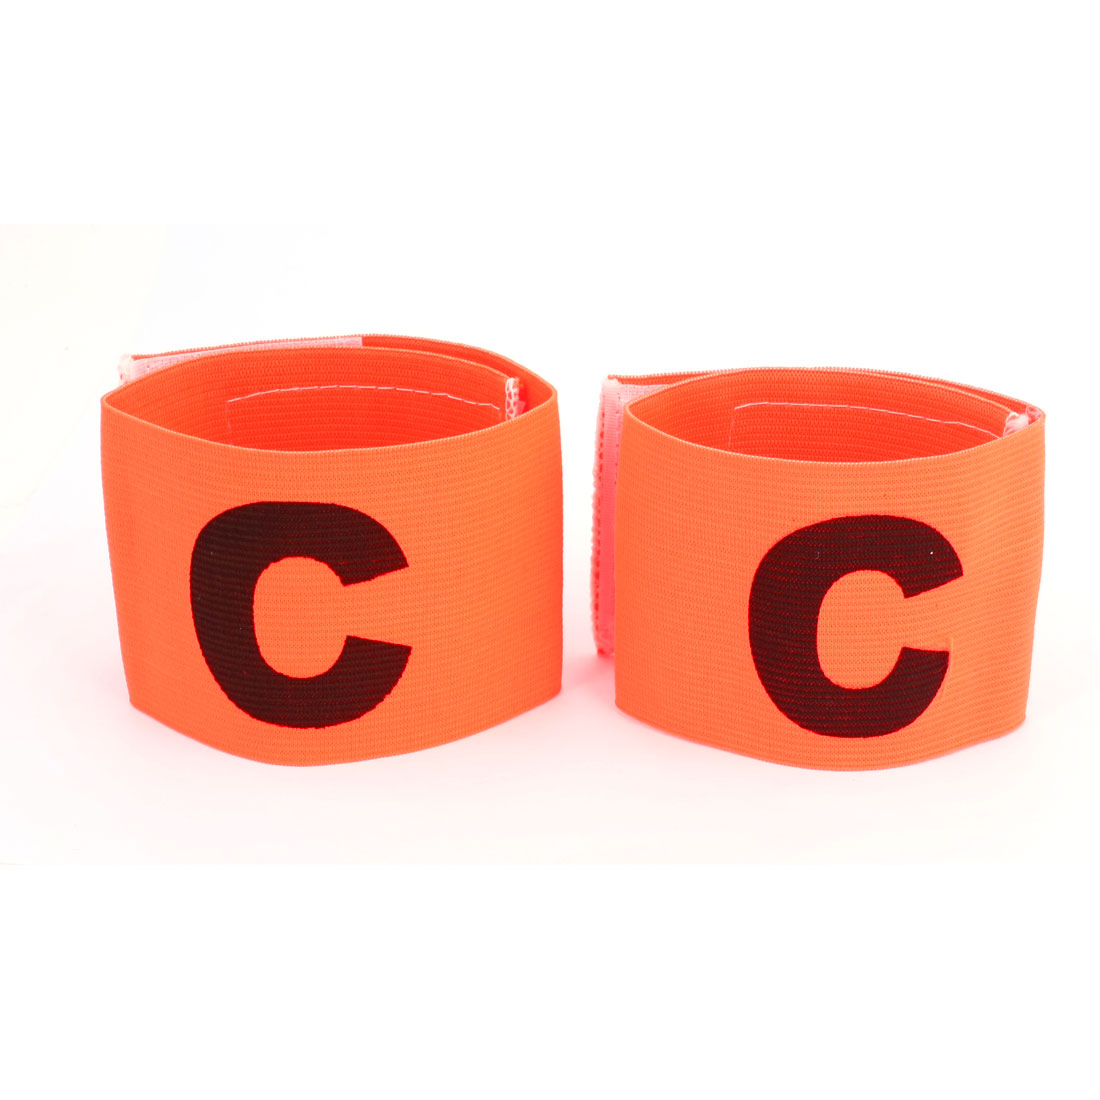 Character C Printed Football Game Hook Loop Closure Elastic Armband Orange Red 2pcs